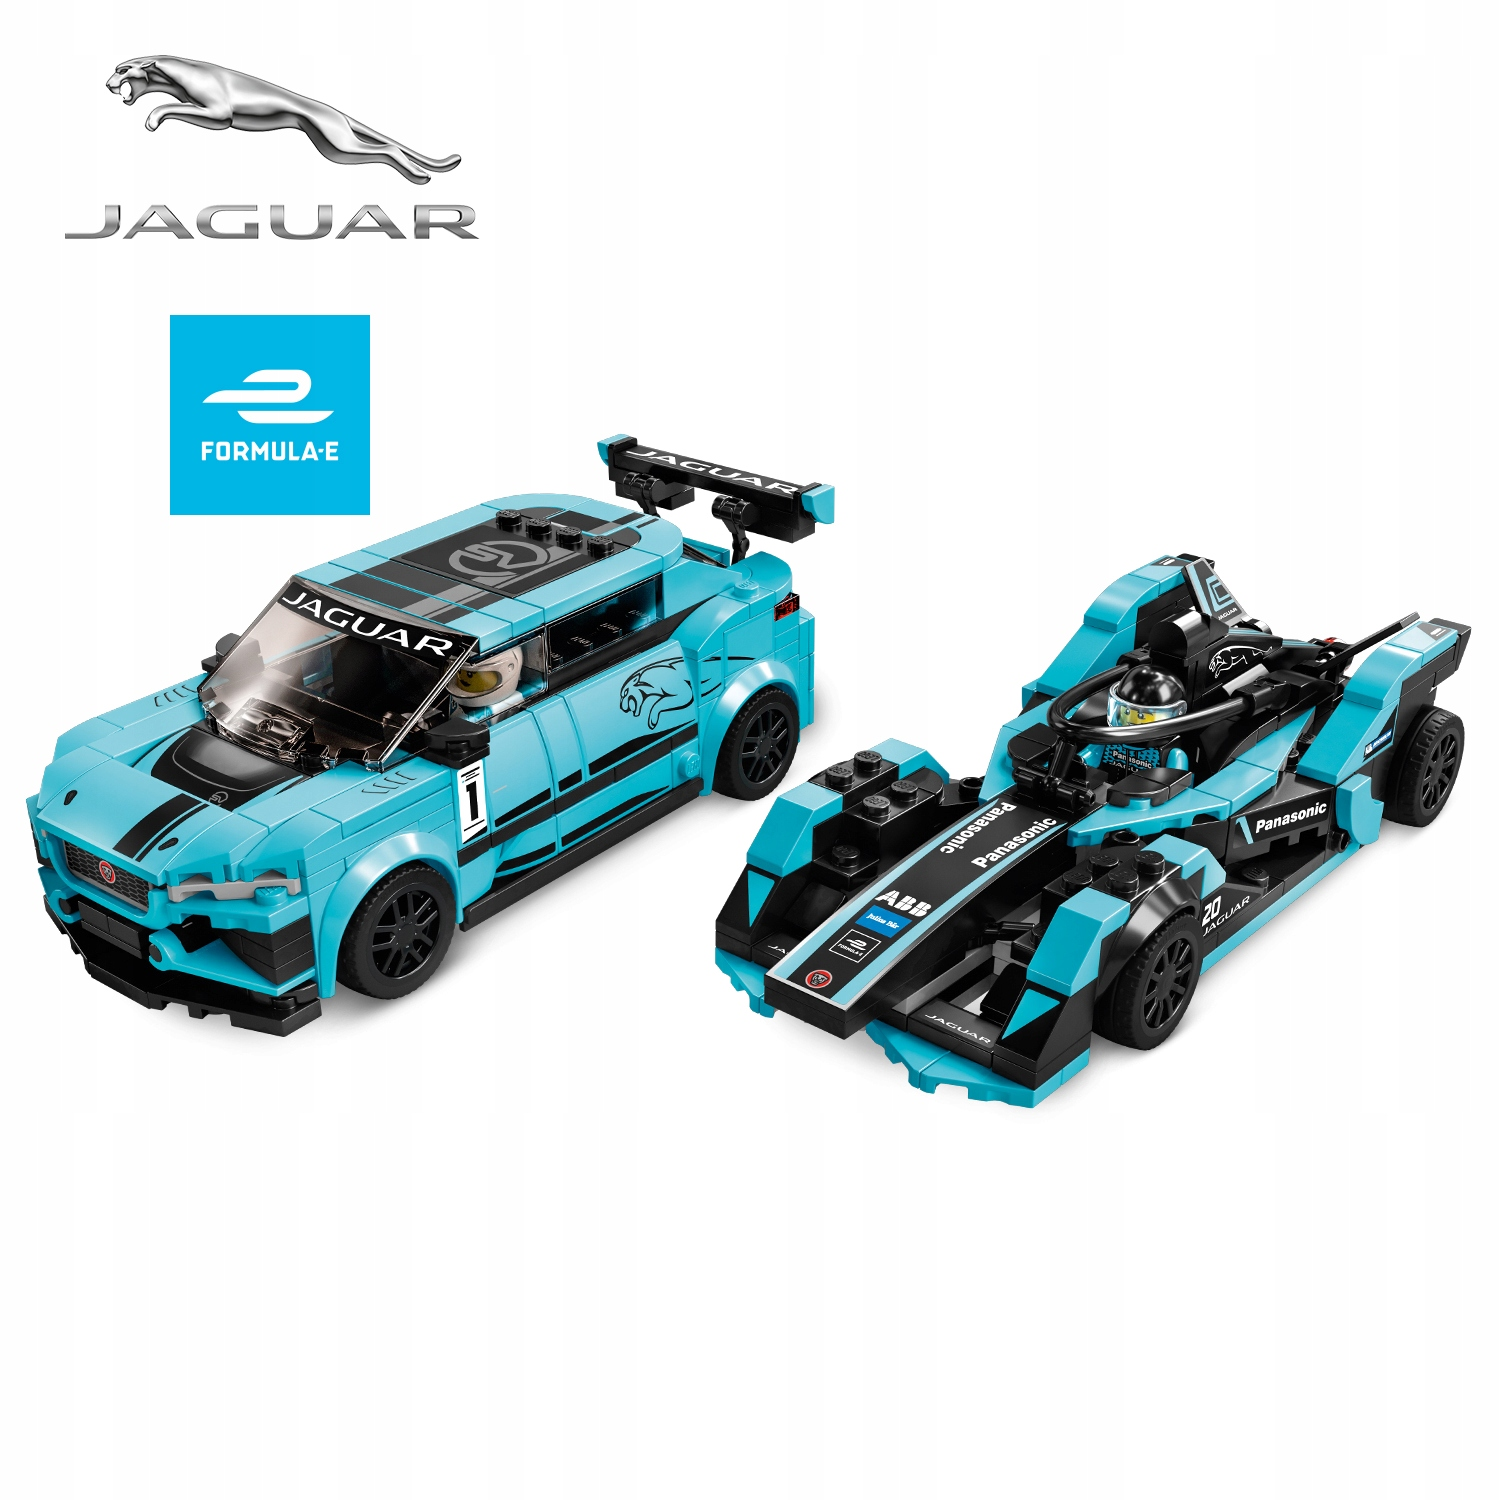 LEGO Jaguar Racing GEN2 car + I-PACE eTROPHY 76898